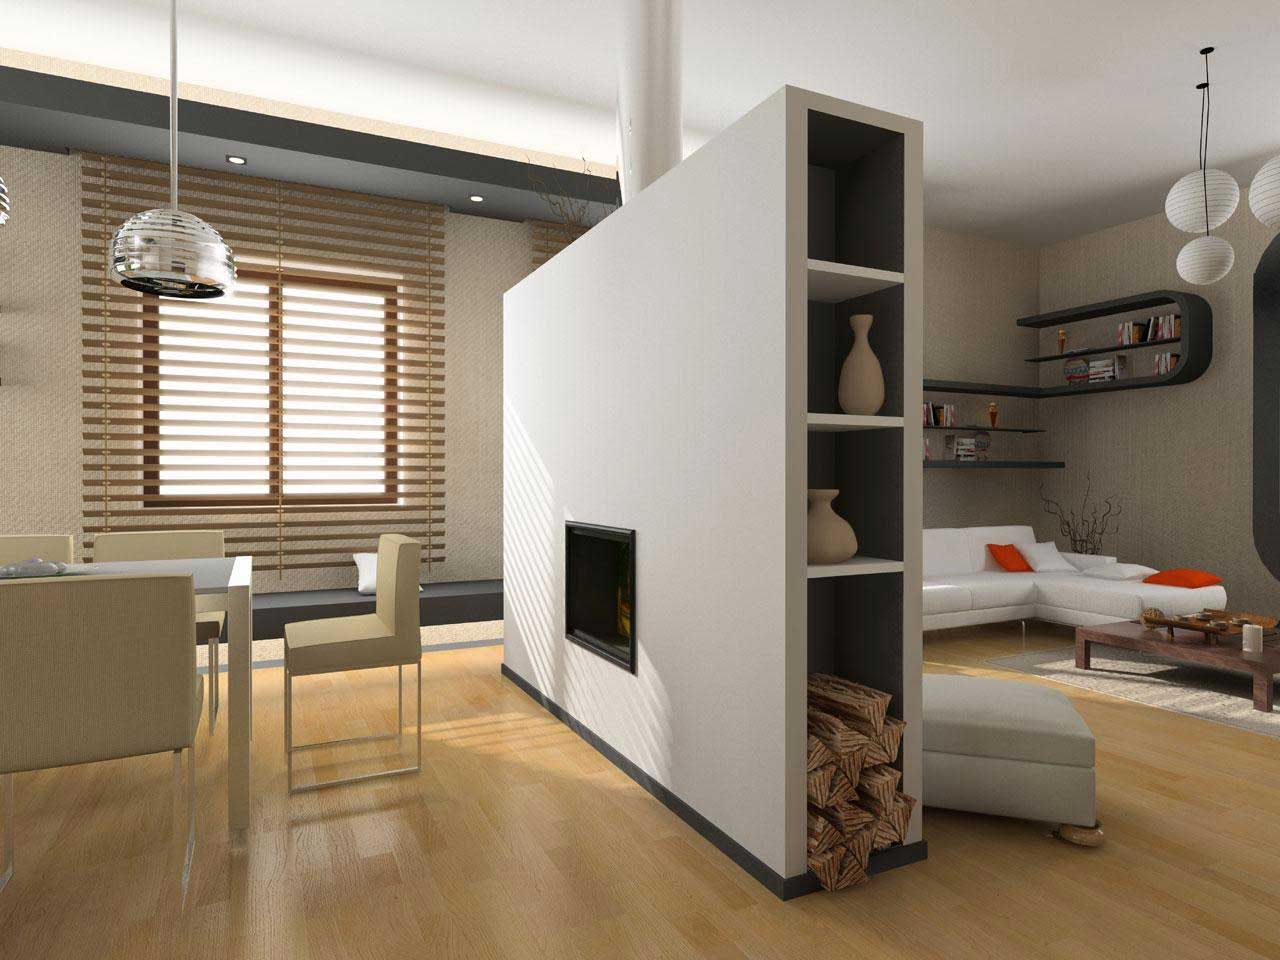 17 Stylish Space Dividers For Every Room | Divider, Modern room and ...